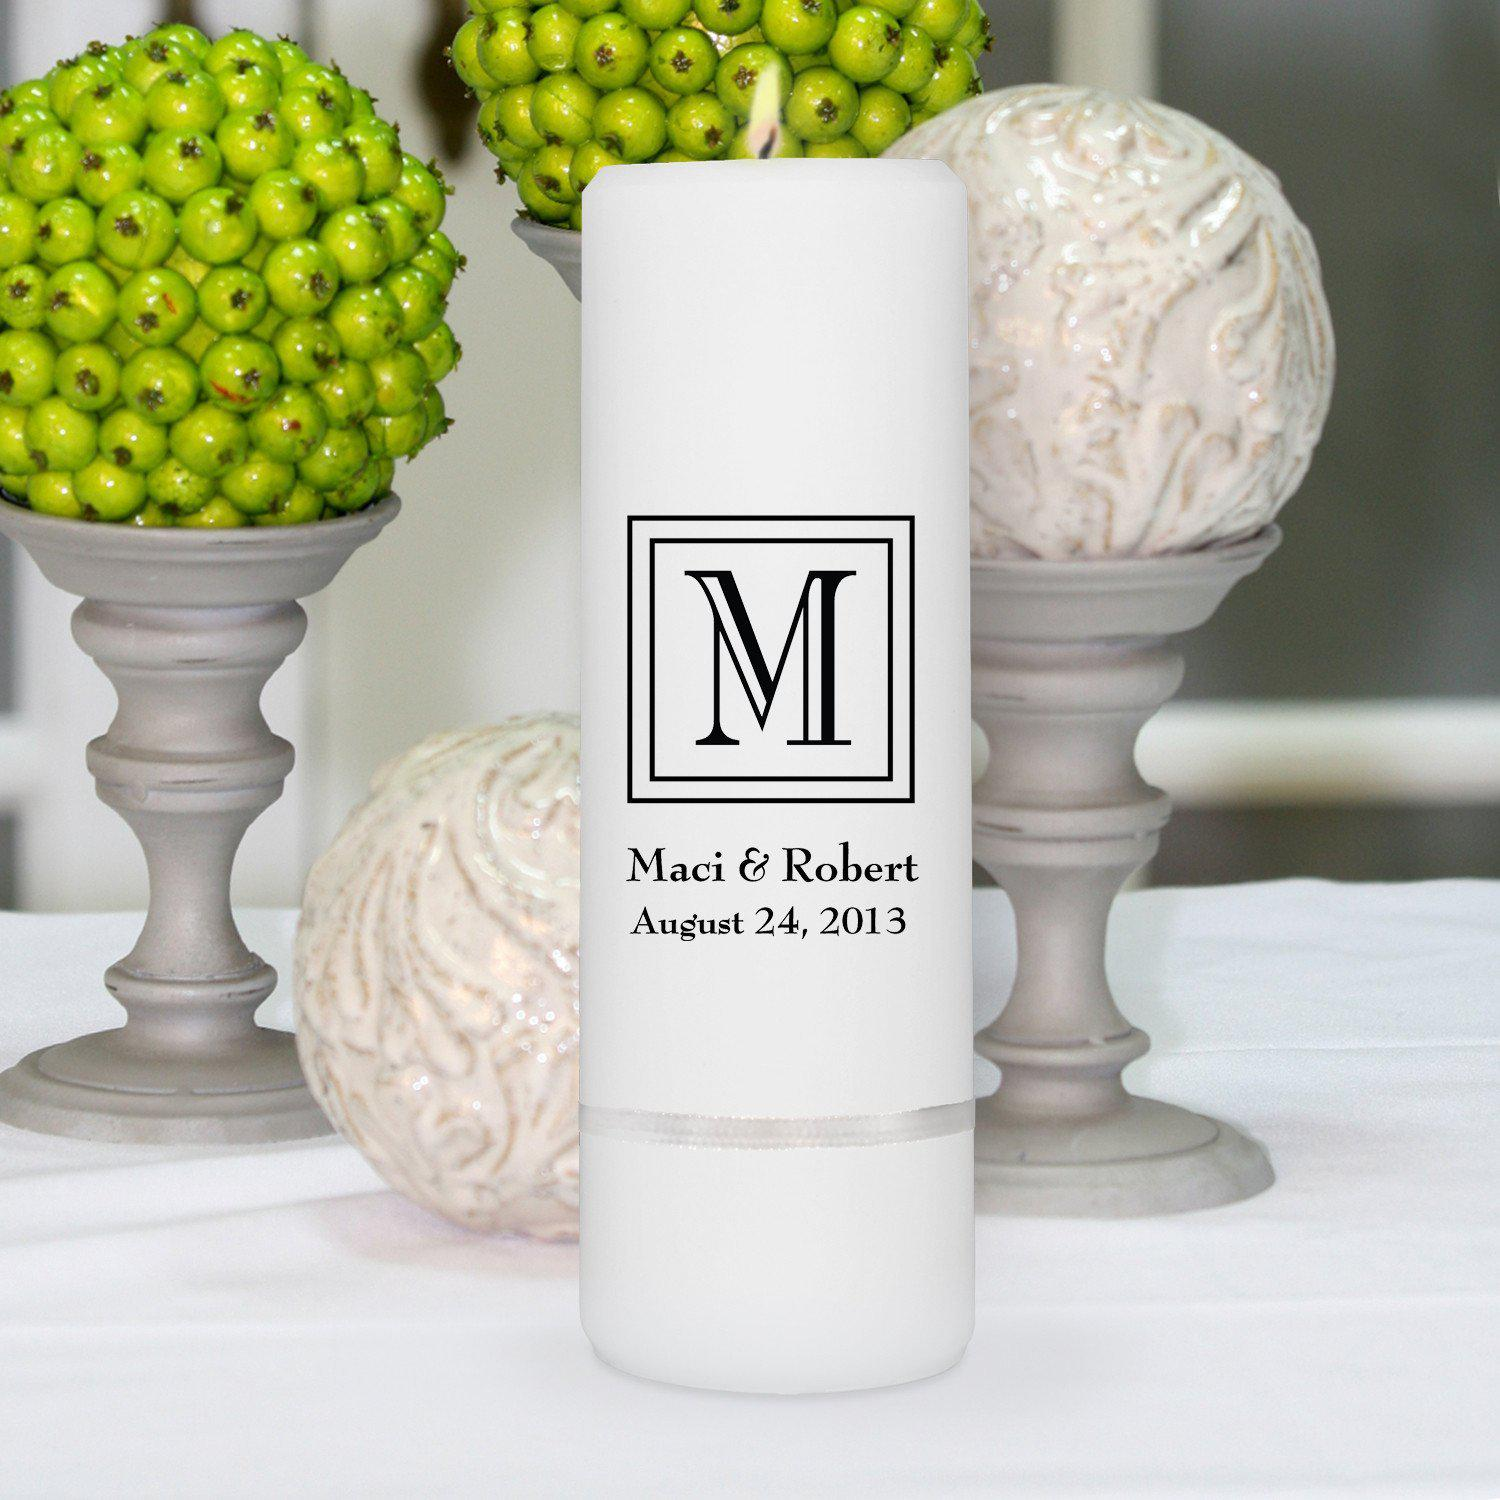 Personalized-Wedding-Unity-Candle-Personalized-3x-9-Candle